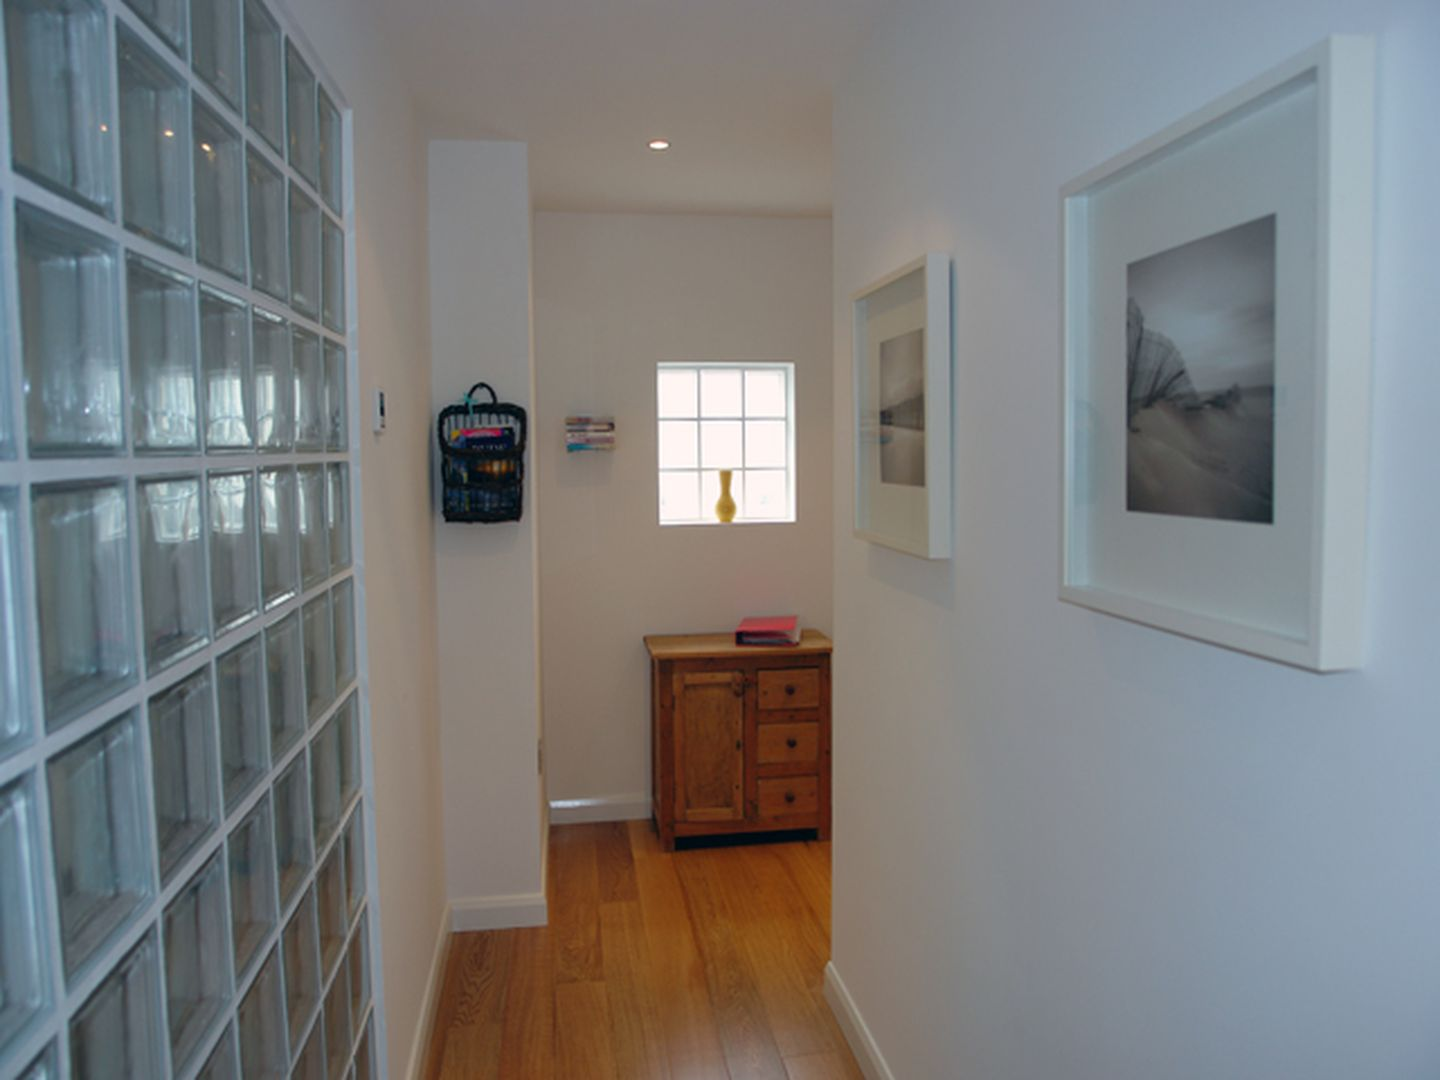 11 Hawkers Court Glass Walled Hallway